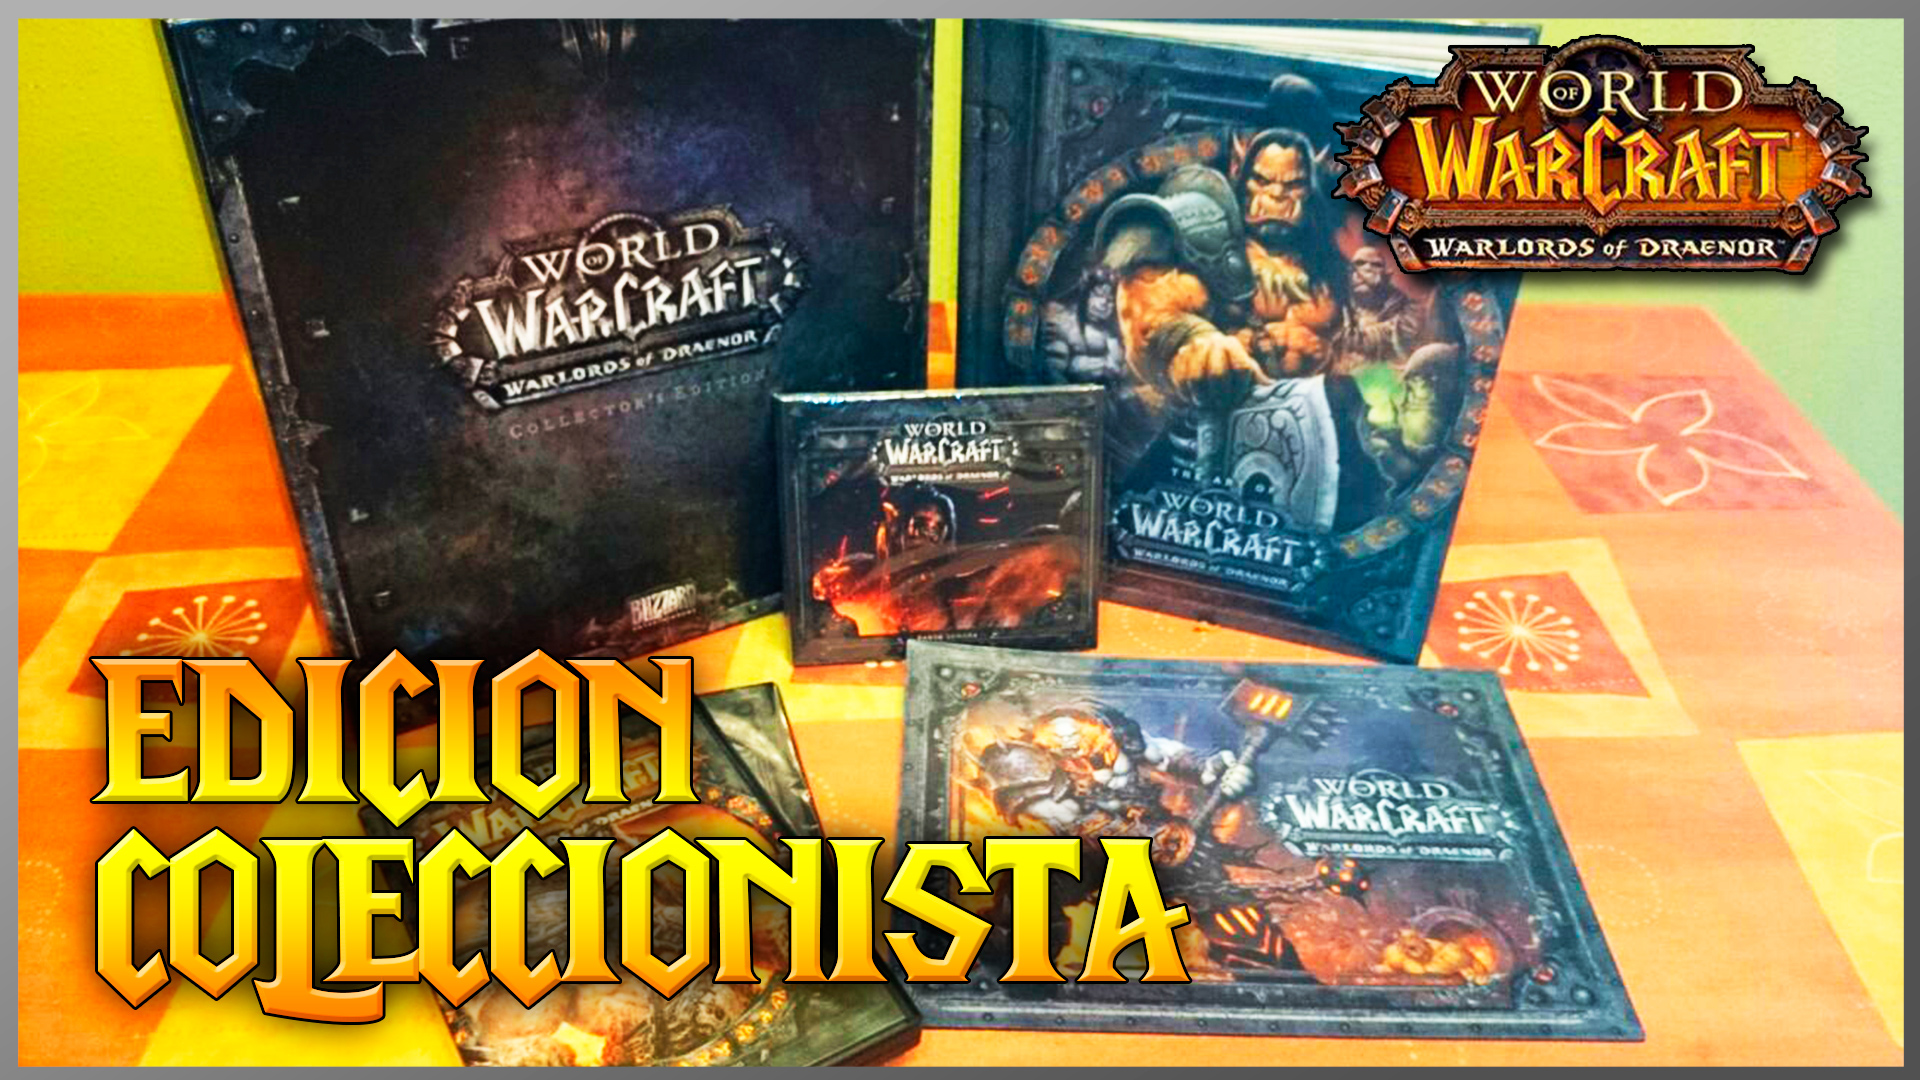 Libros De World Of Warcraft Unboxing World Of Warcraft Warlords Of Draenor Edición